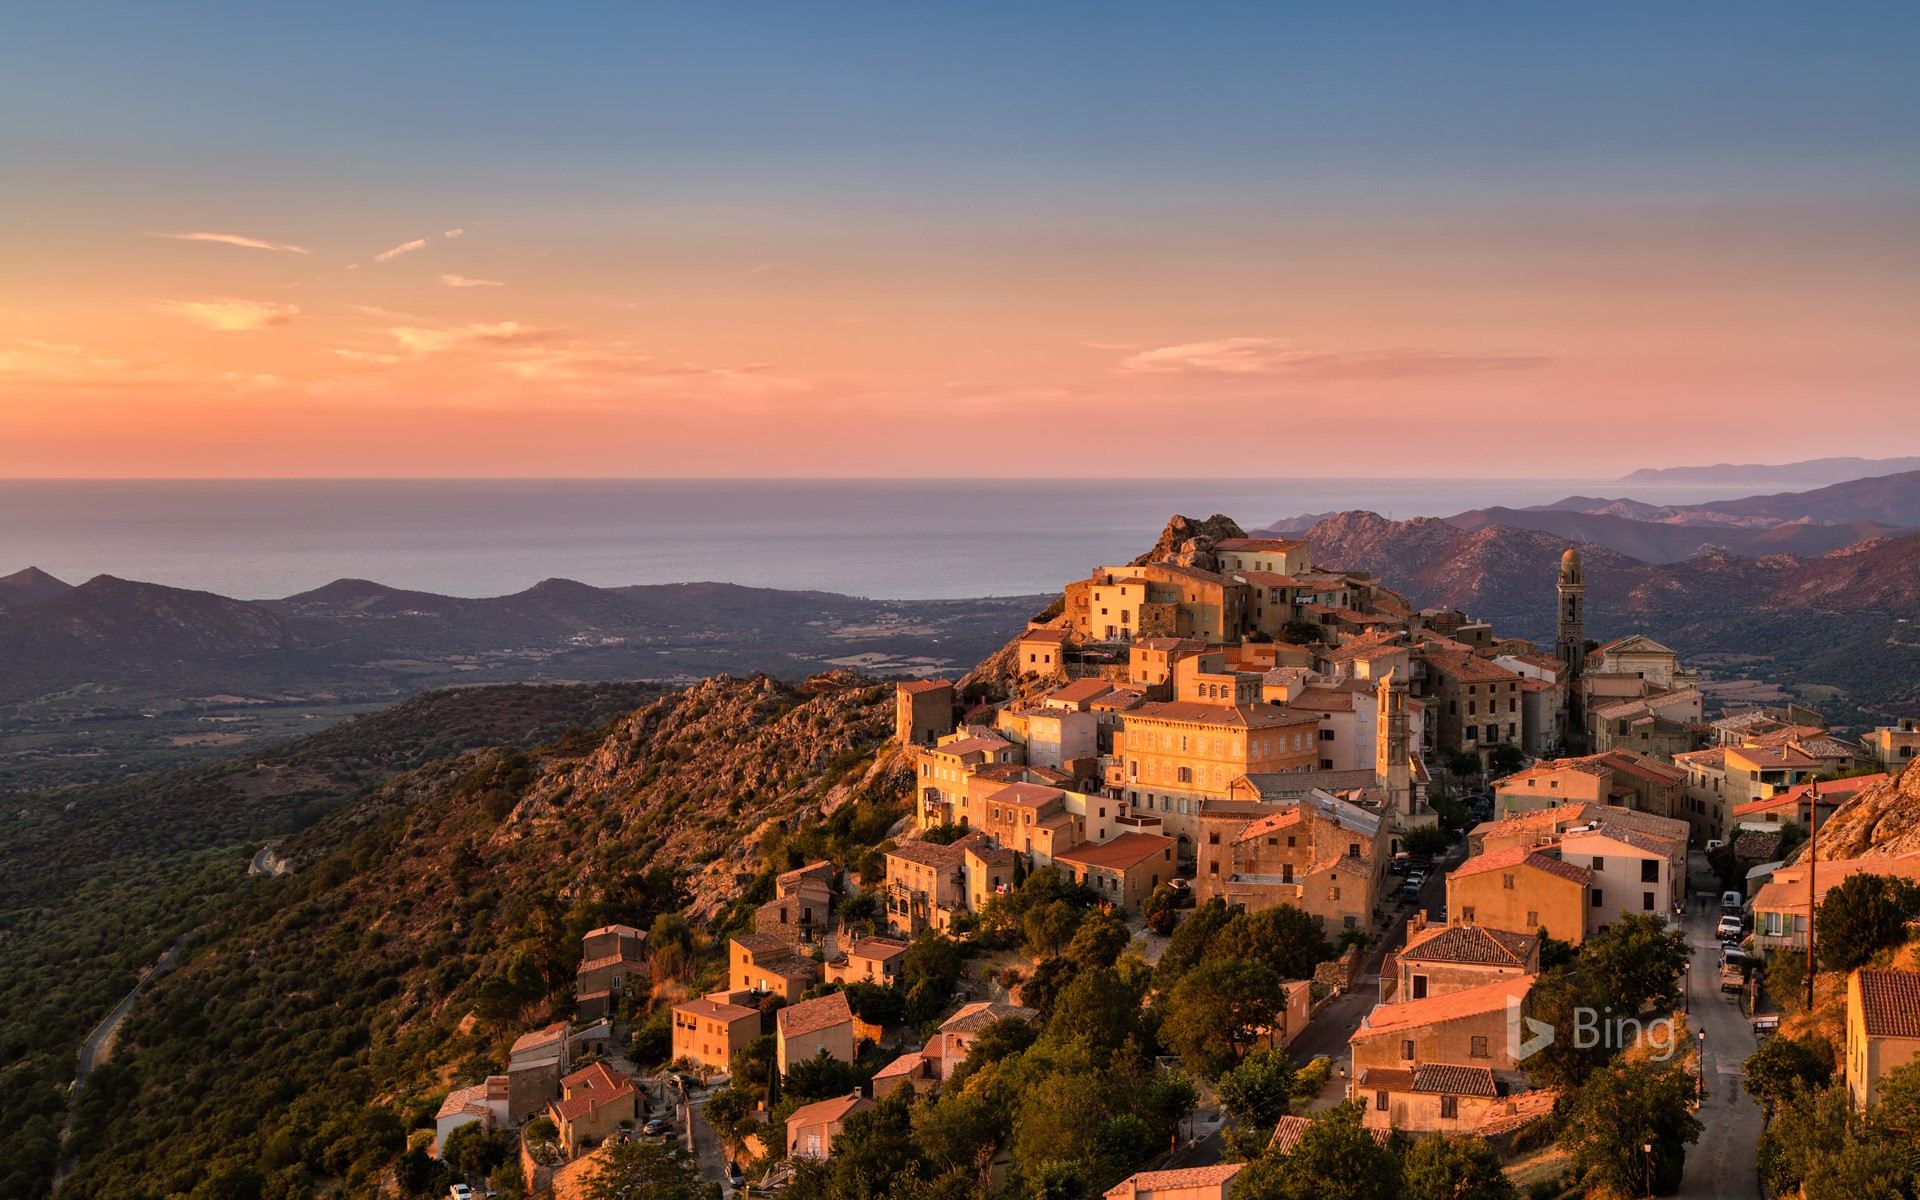 Evening sun on the perched village of Speloncato in Corsica